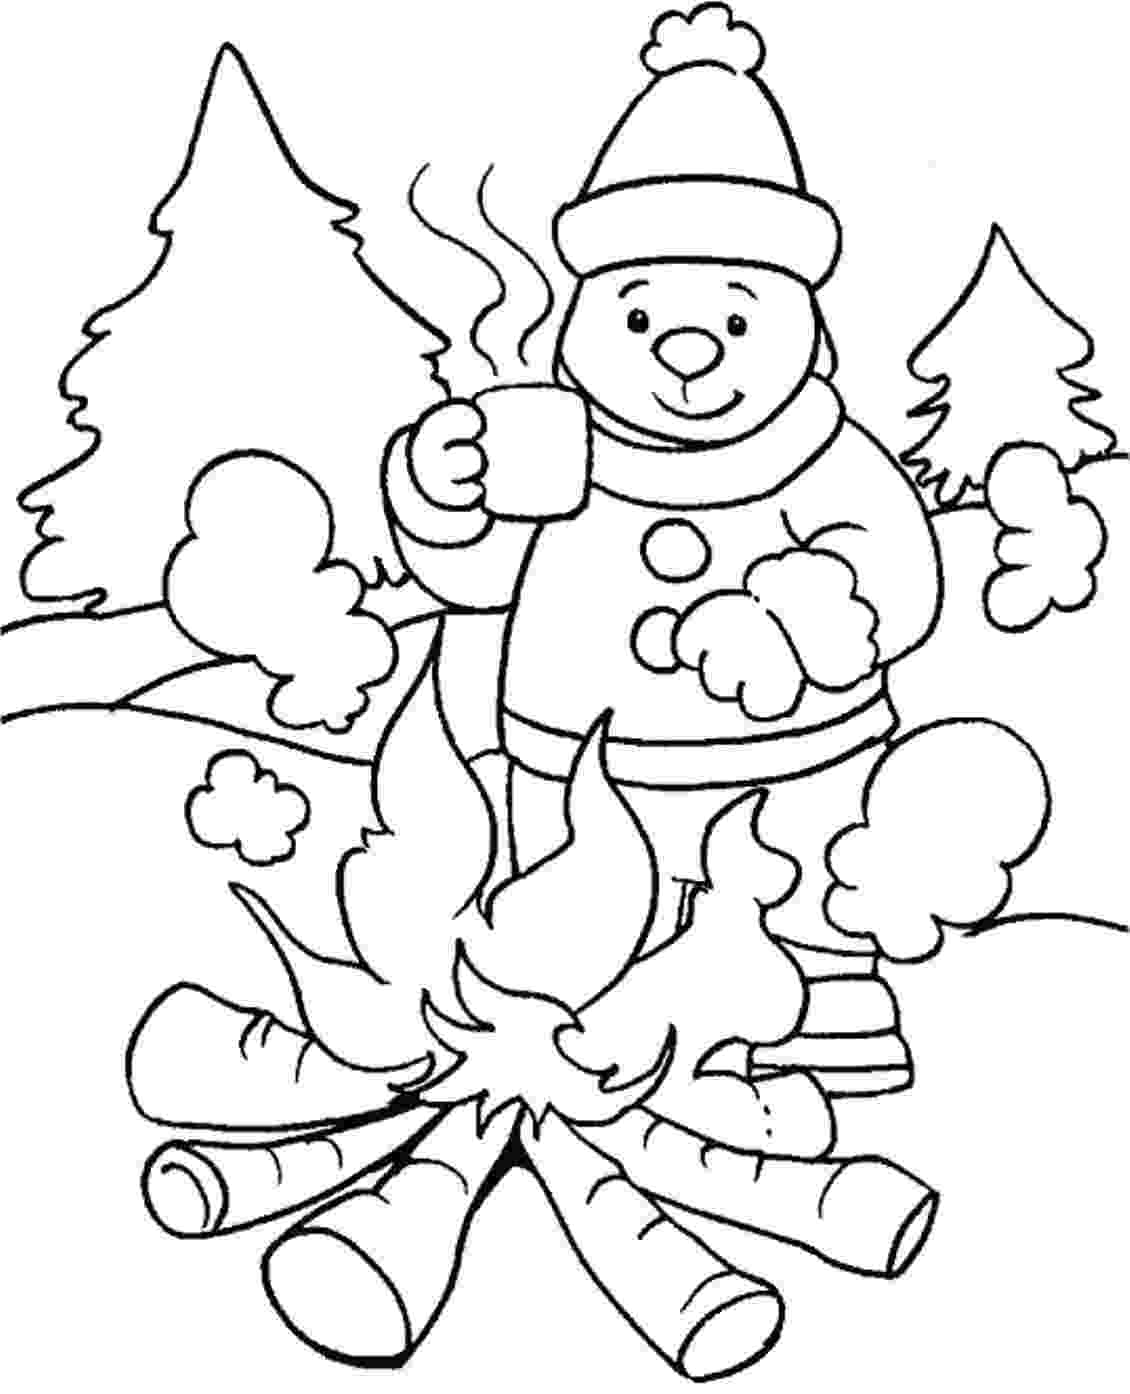 winter animals coloring pages animals in winter printable worksheets sketch coloring page pages animals winter coloring